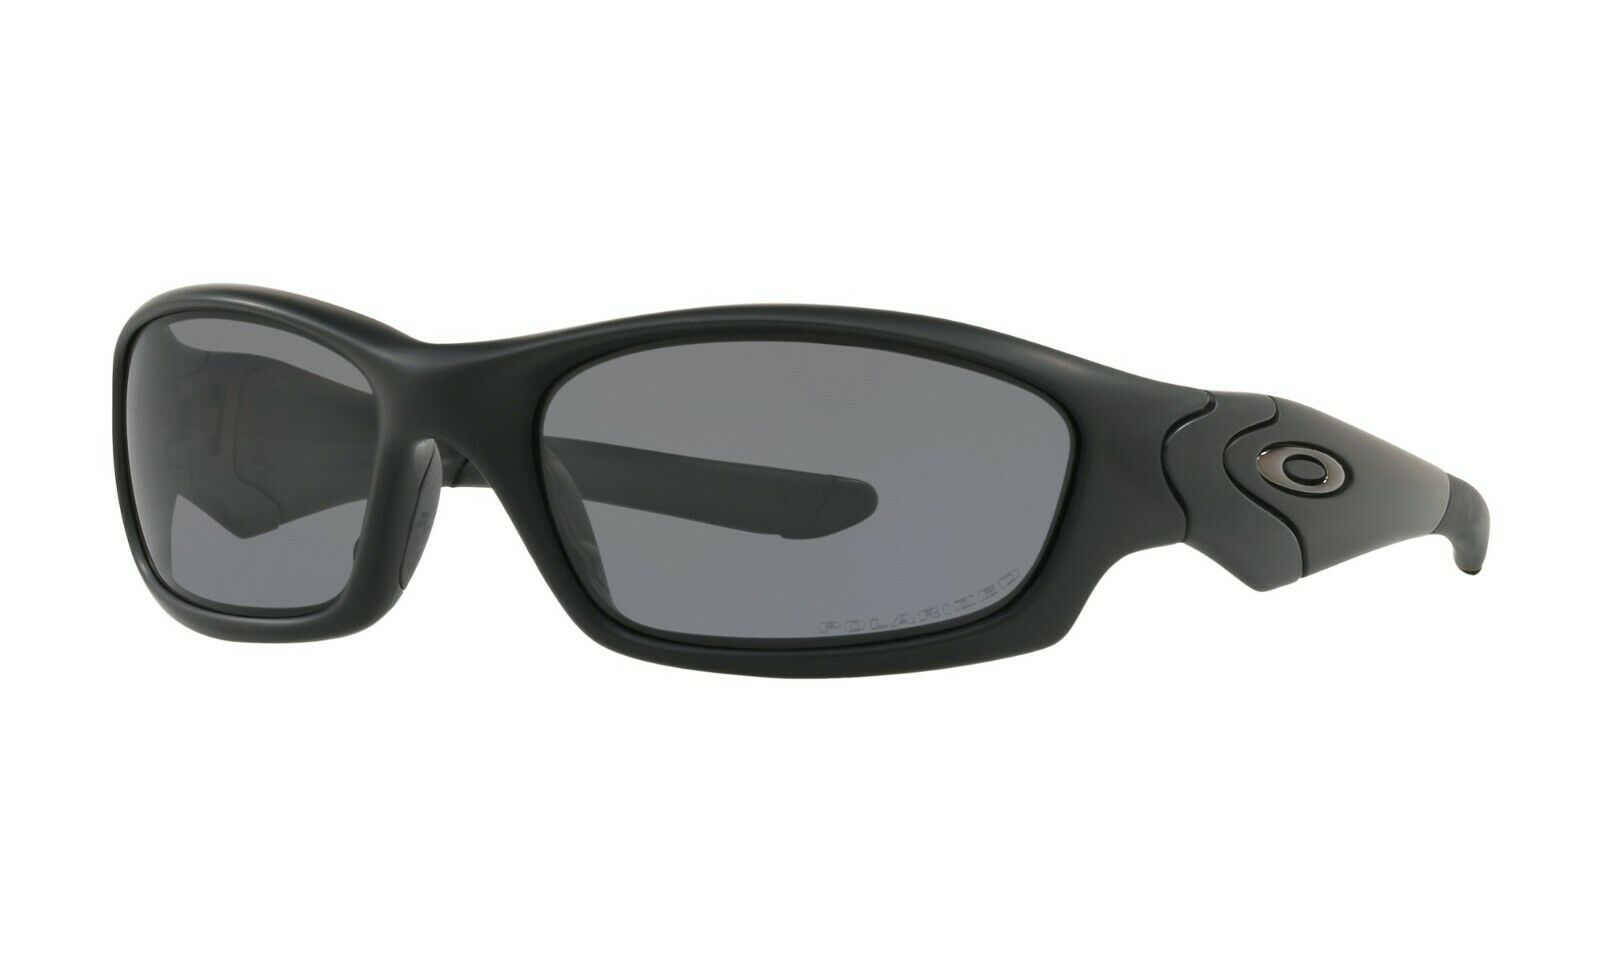 oakley-si-straight-jacket-polarized-sunglasses-11-014-matte-black-w-grey-lens